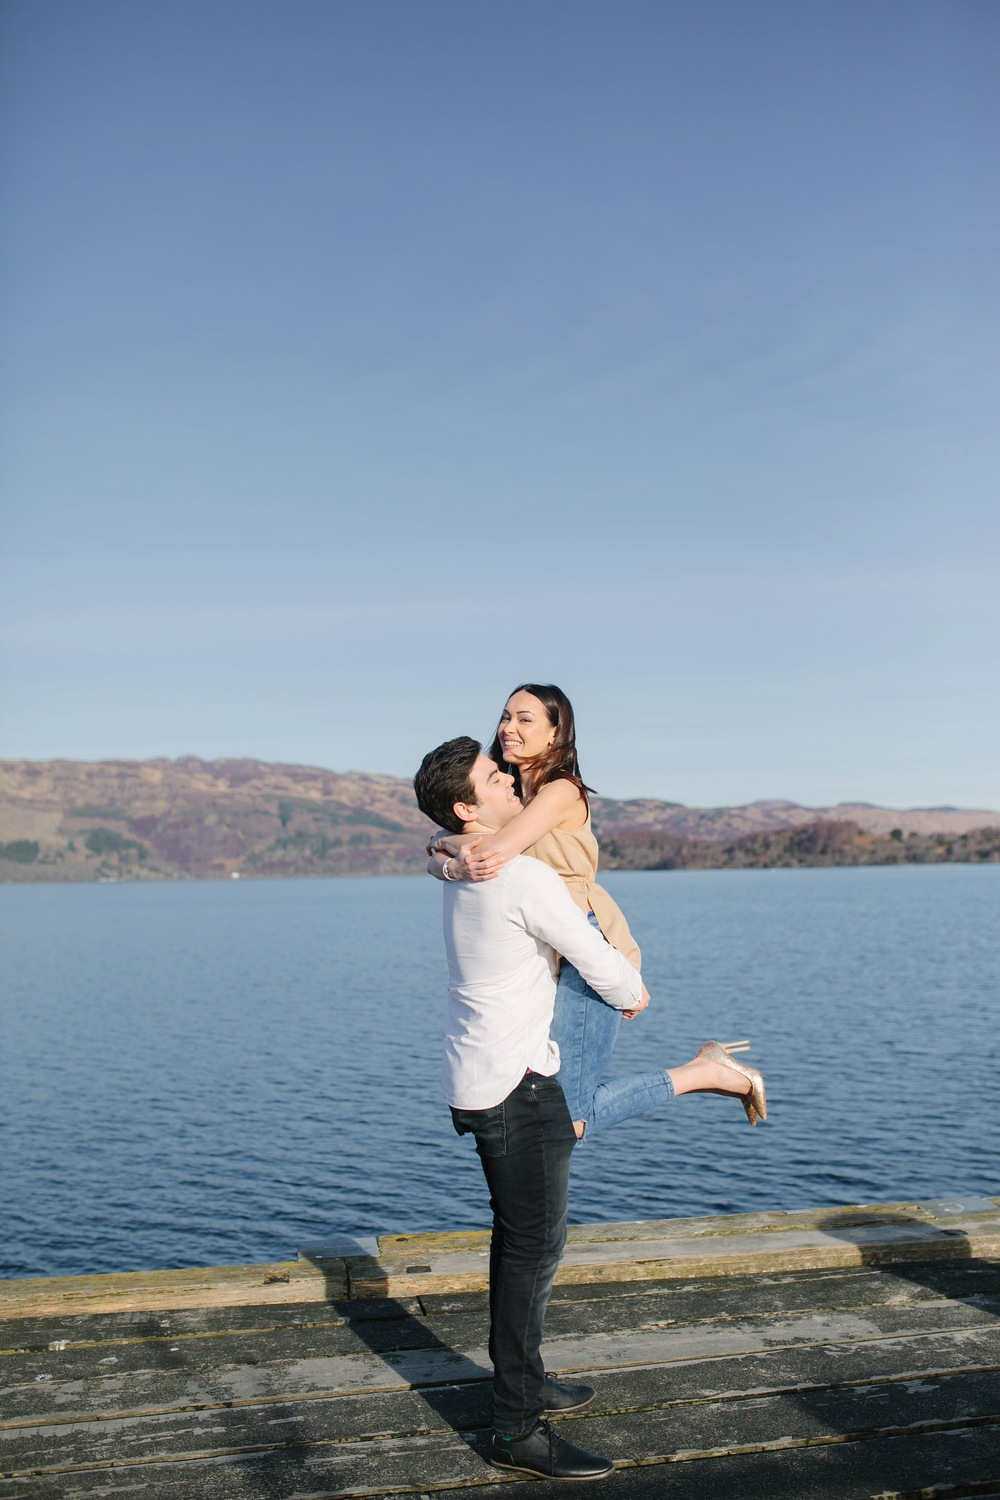 Suzanne_li_photography_loch_lomand_pre_wedding_0027.jpg